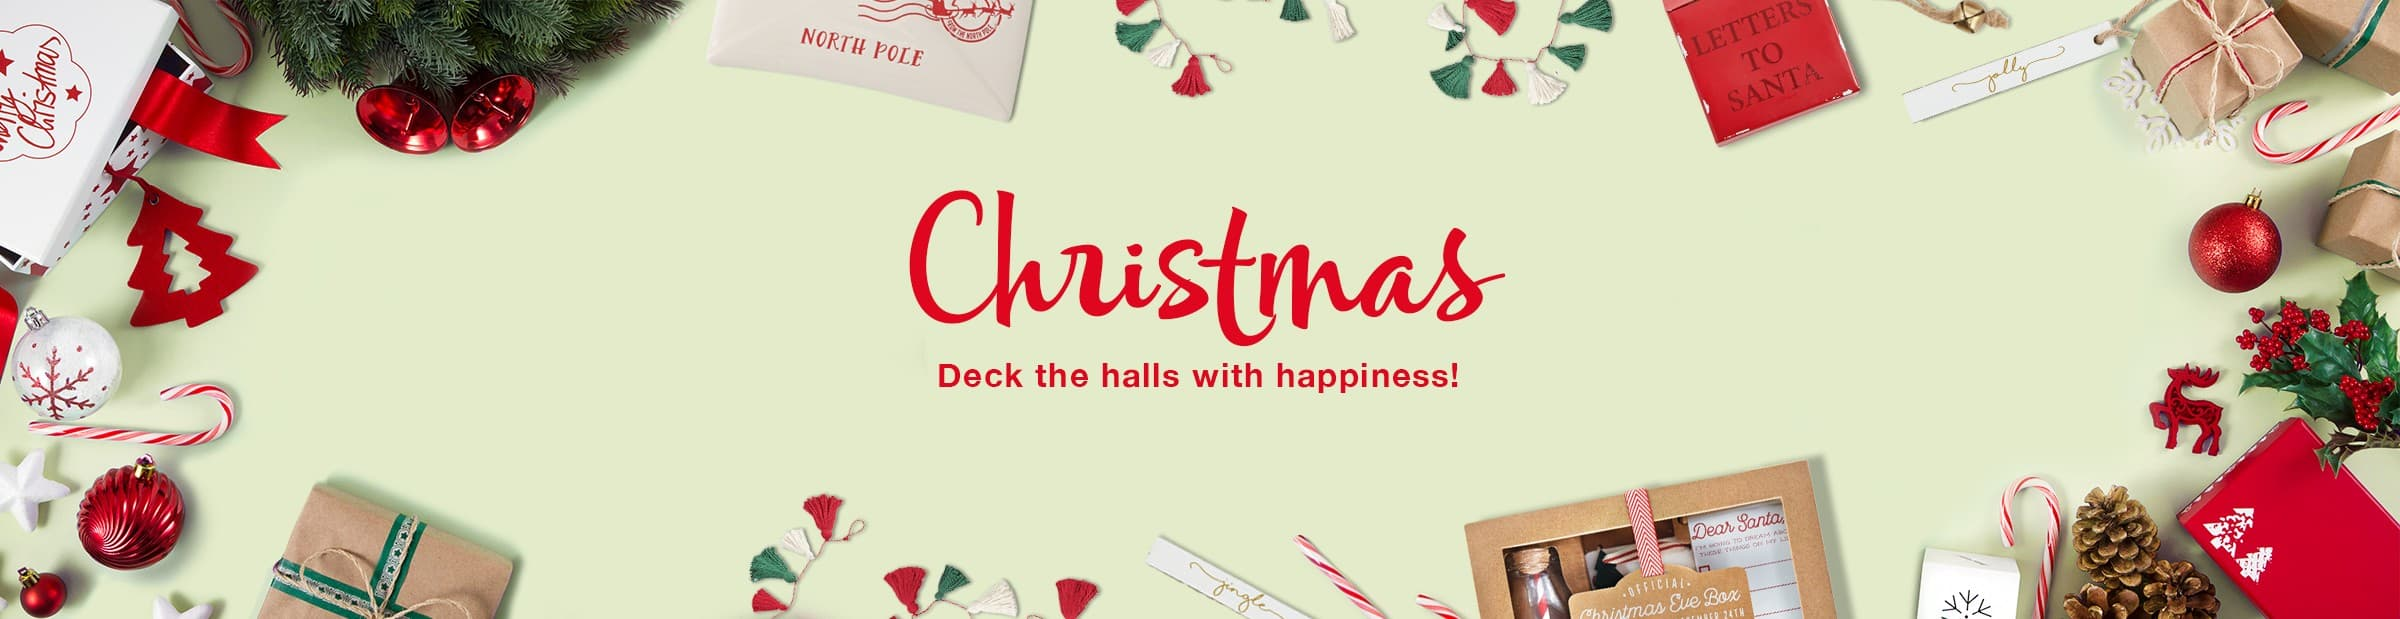 Christmas, deck the halls with happiness! Christmas gifts, ornaments, candy canes, pinecones, garland and more. Shop Christmas!